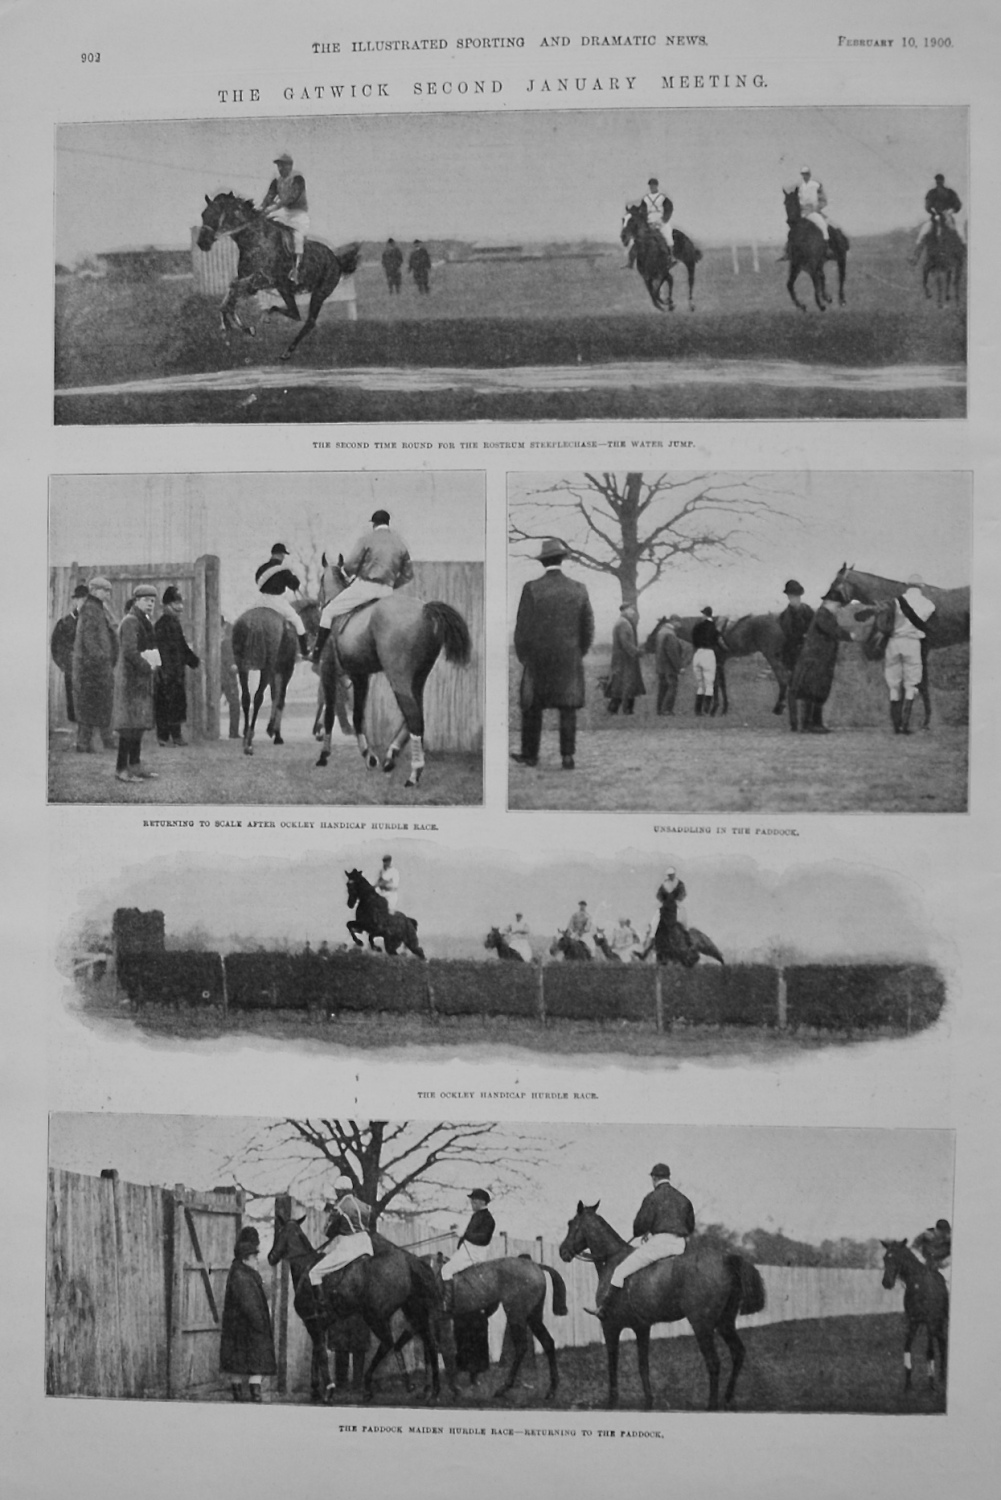 The Gatwick Second January Meeting. 1900